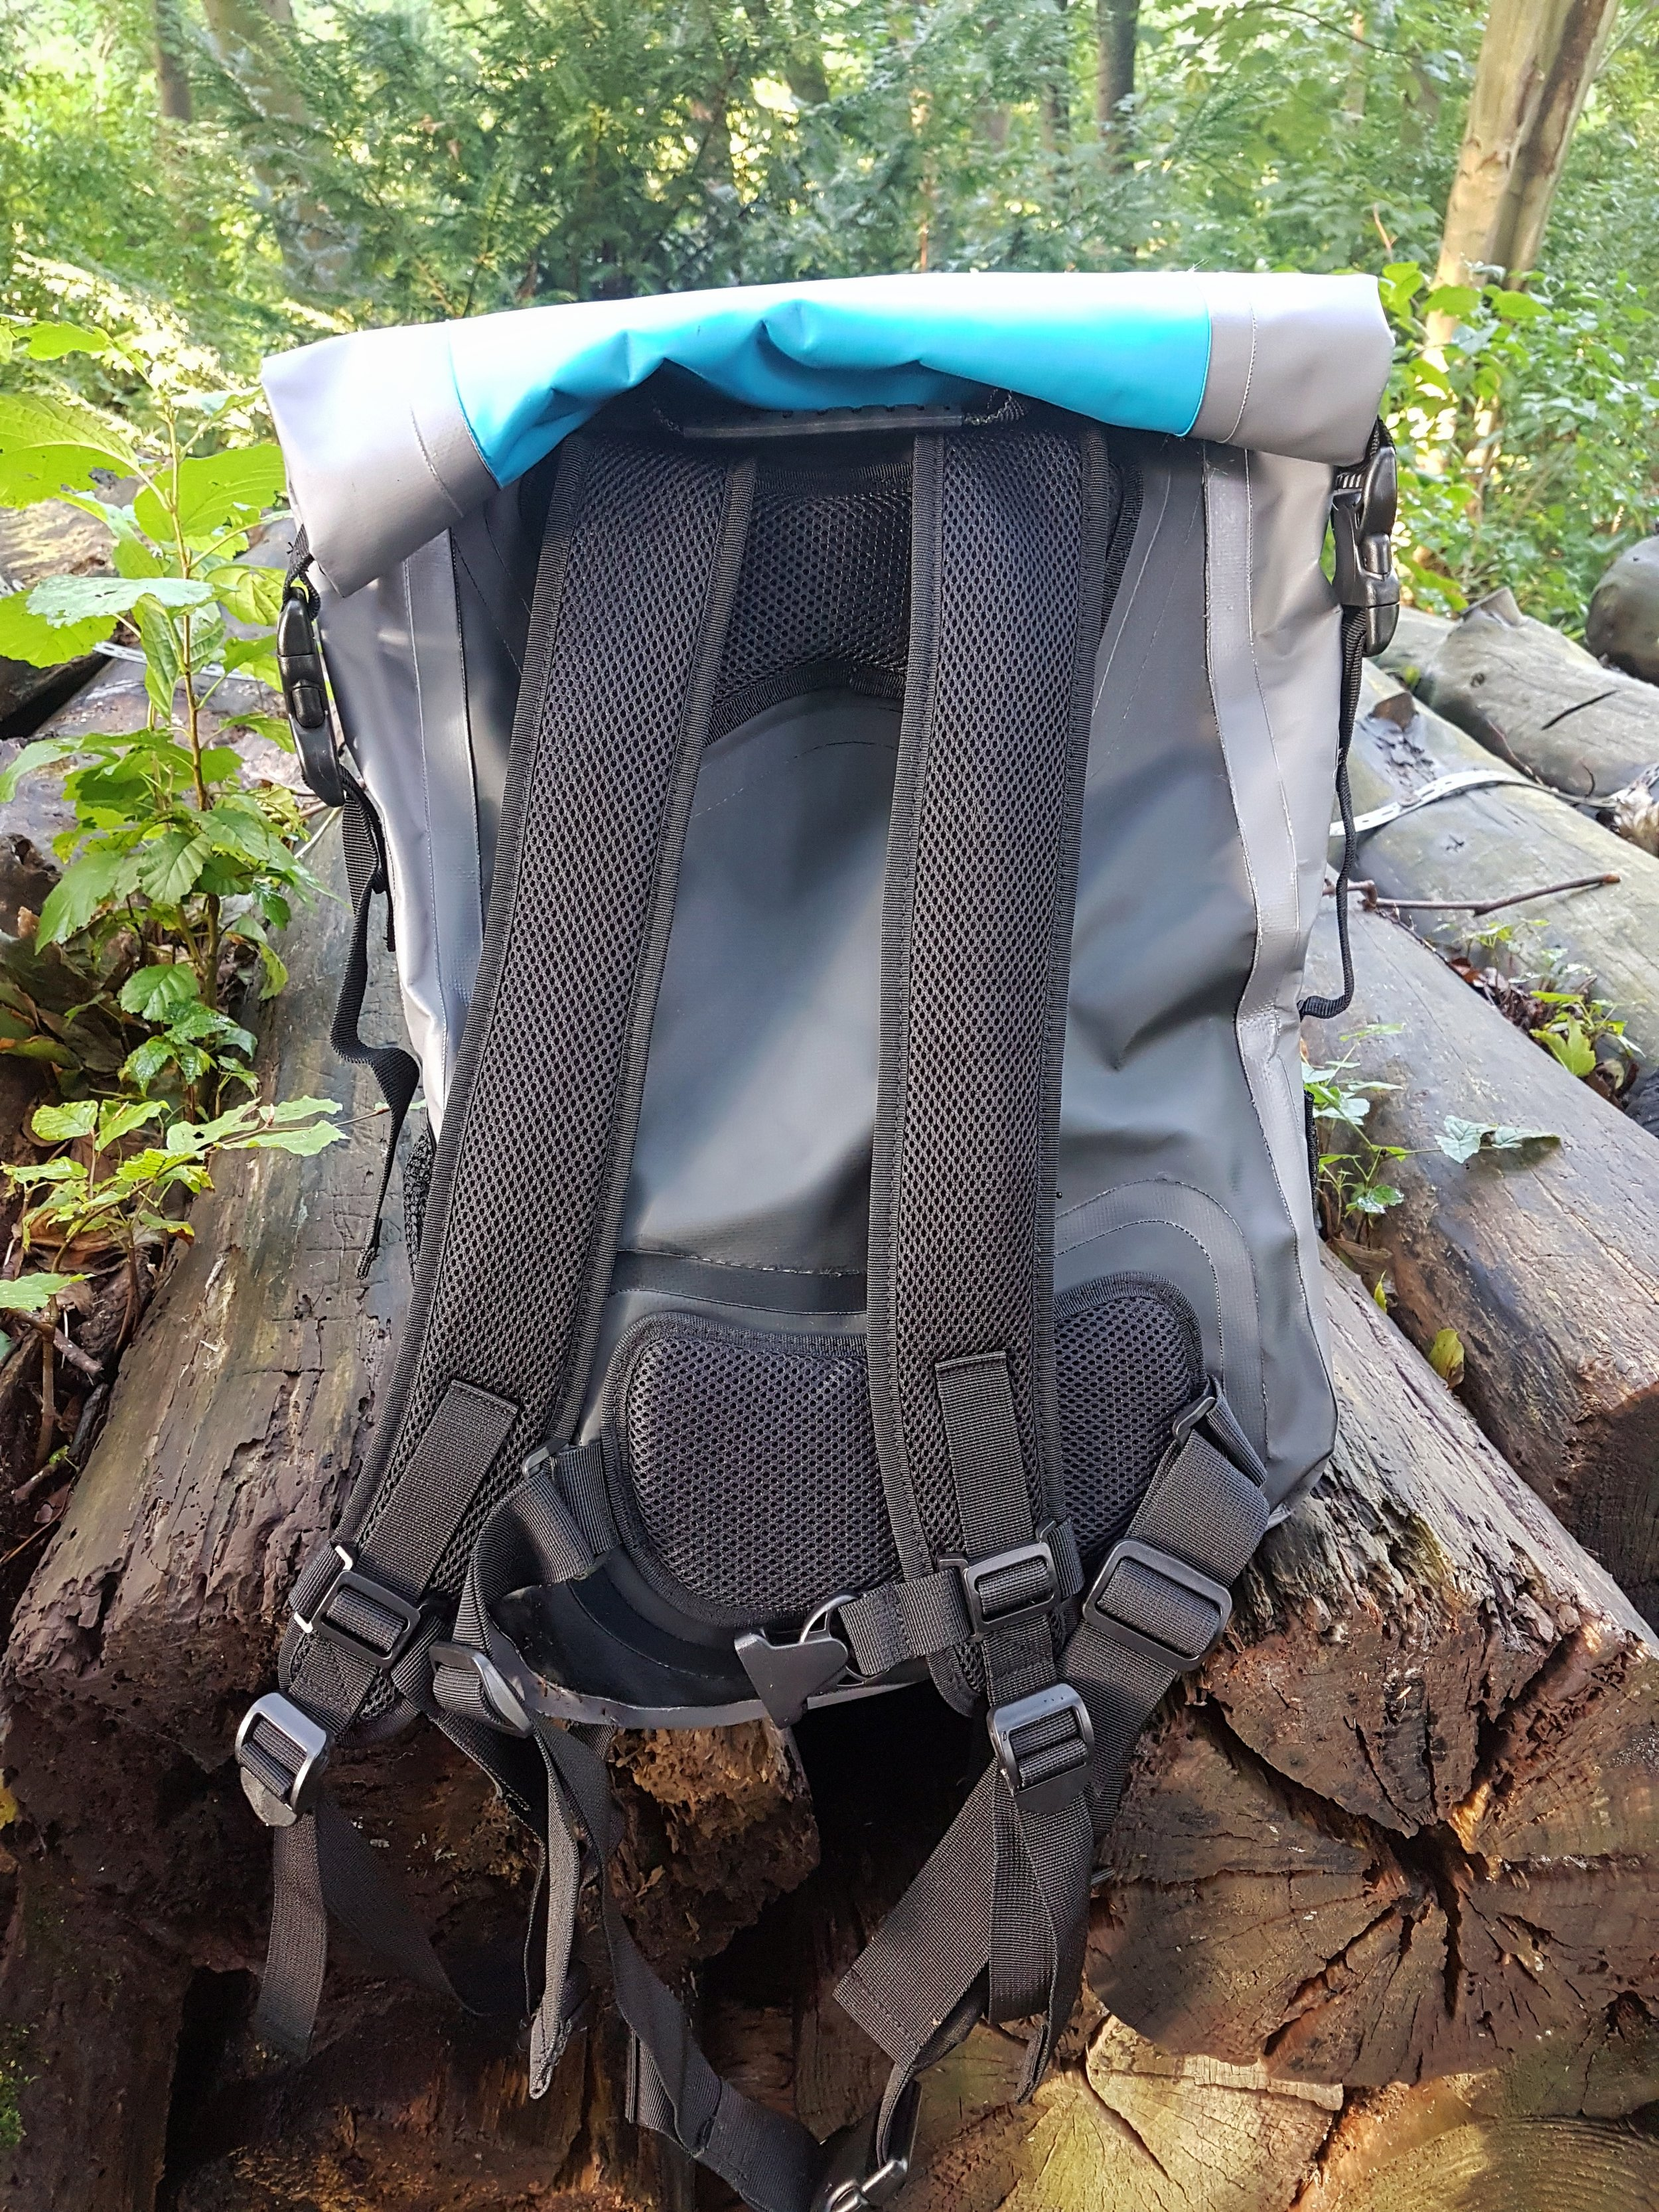 The  bag  has a roll down top with compression seals to allow movement to be kept to a minimum, inside the bag. The bag is comfortable to wear and the padded straps allow for a comfy feel at all times.